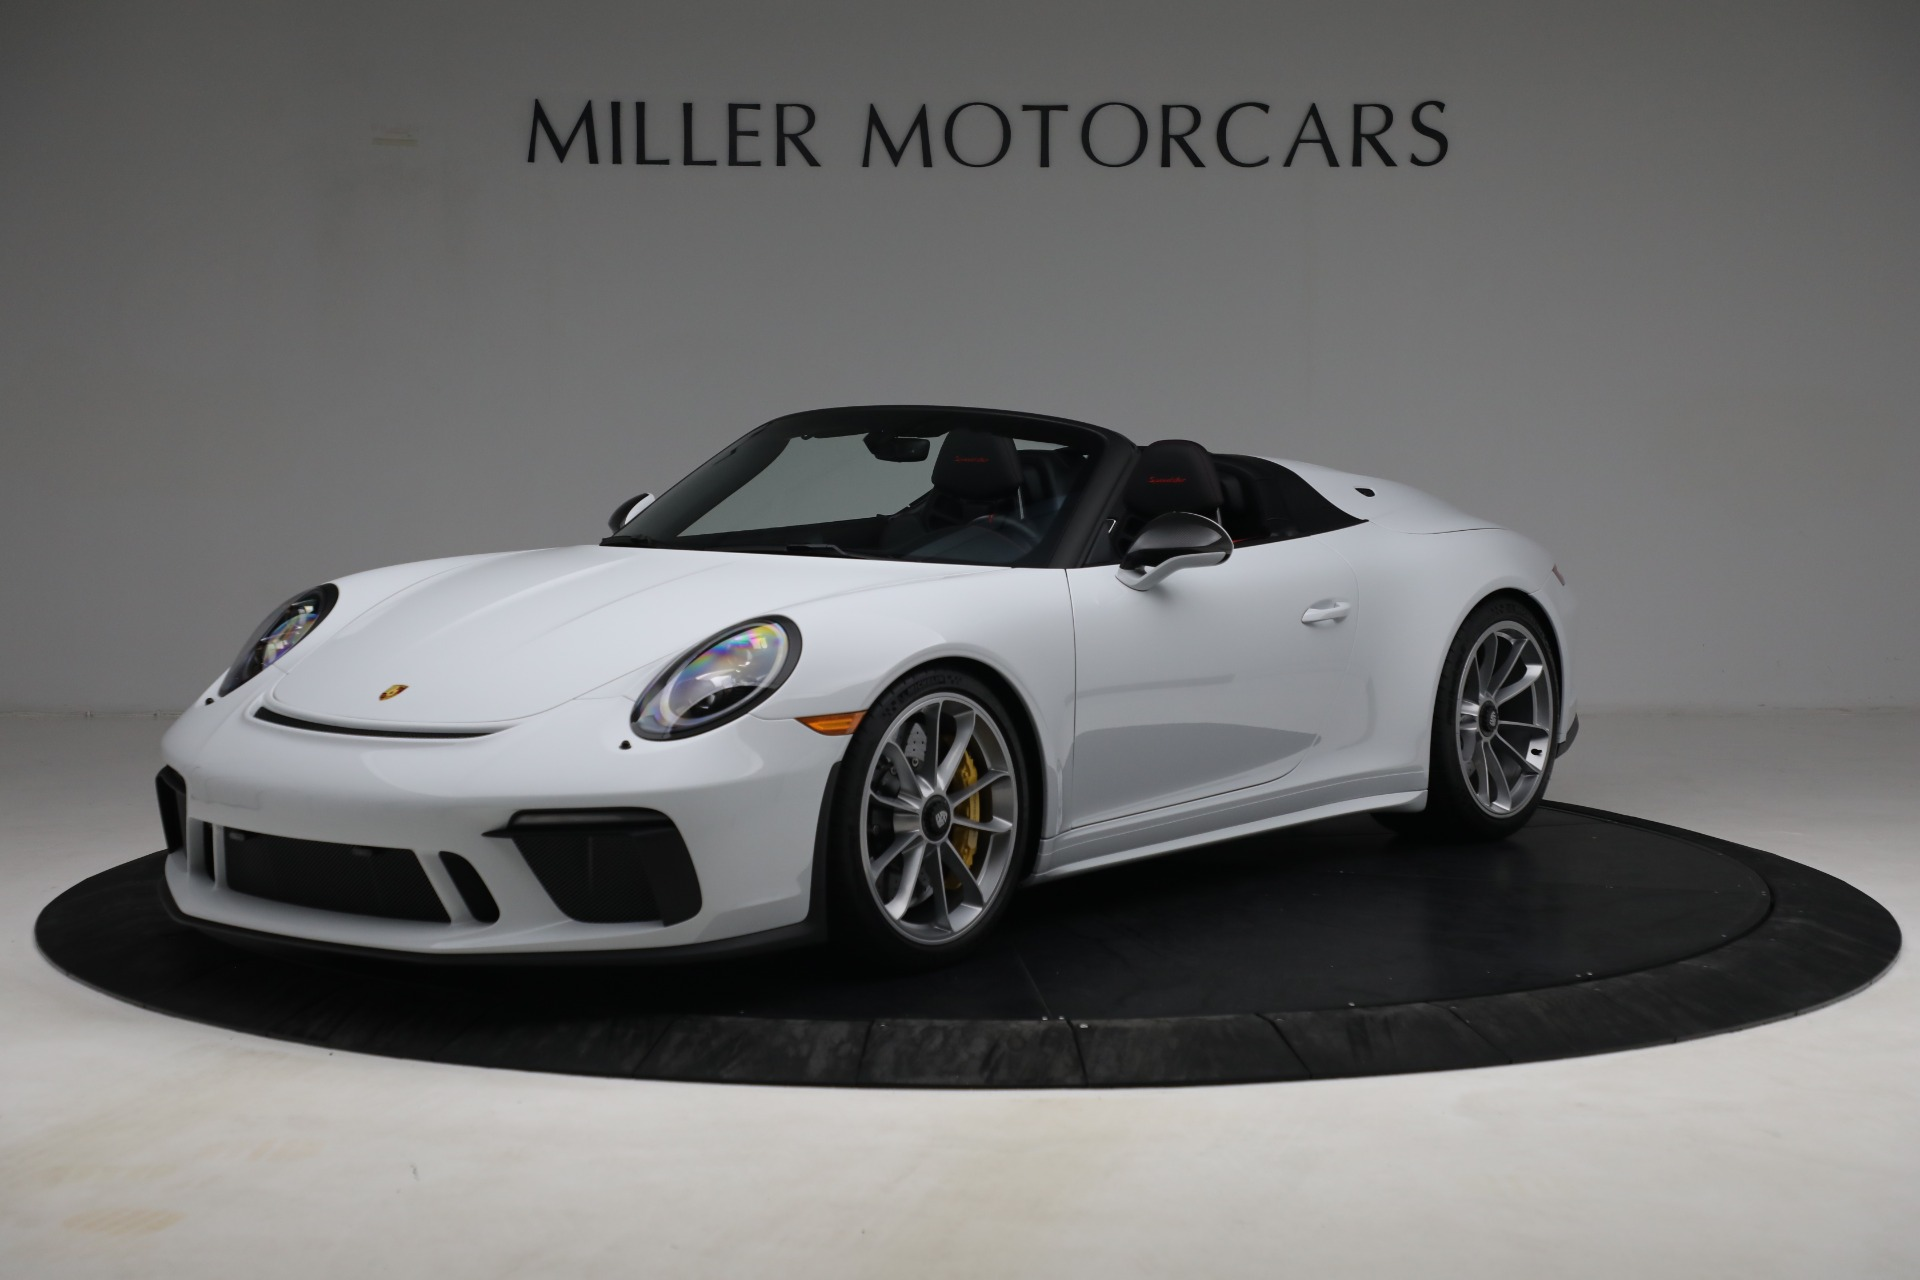 Used 2019 Porsche 911 Speedster for sale $395,900 at Pagani of Greenwich in Greenwich CT 06830 1